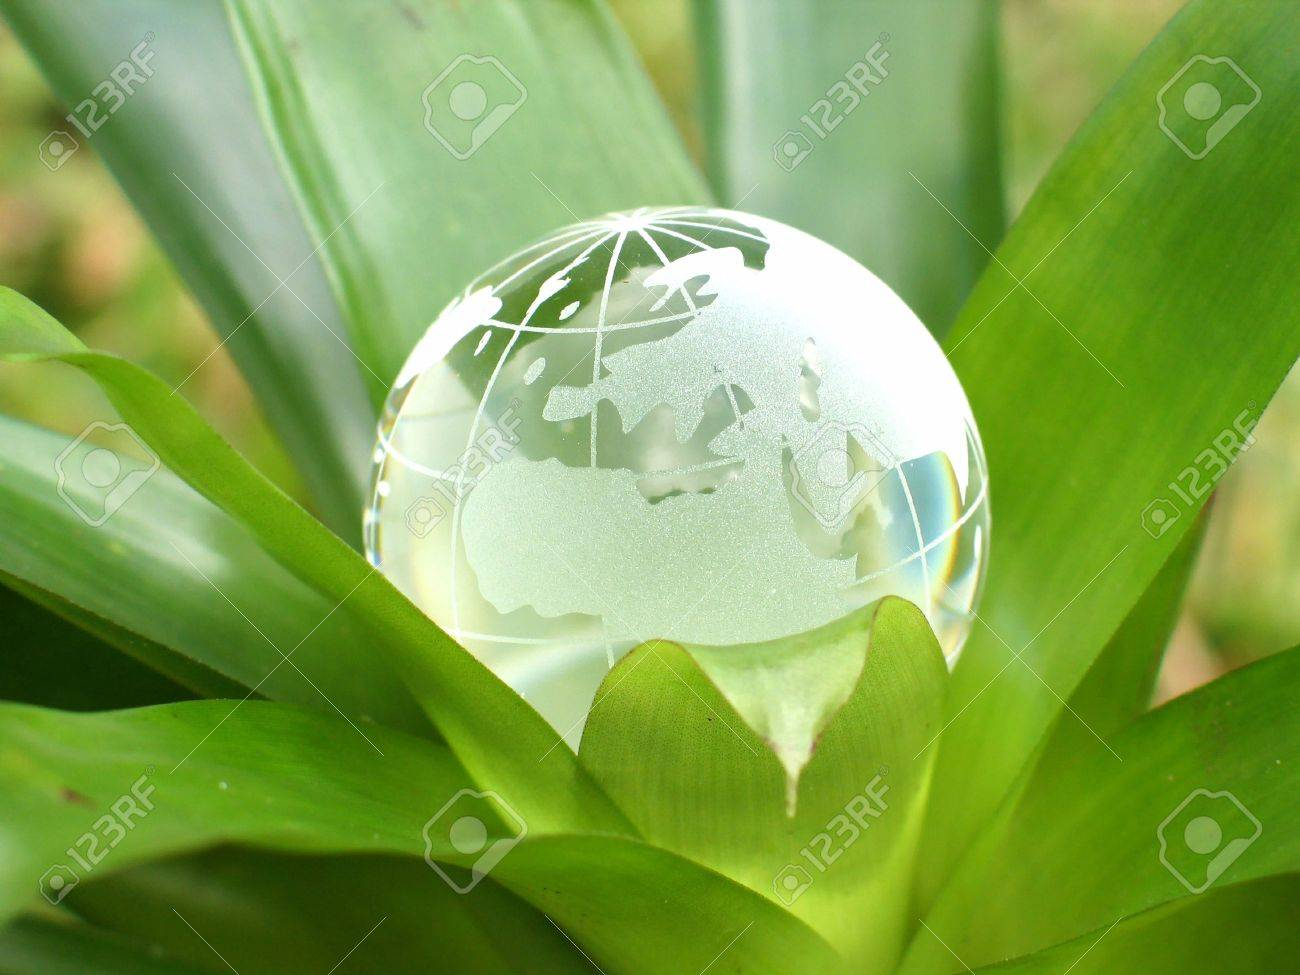 A crystal globe inside a plant. Concept representing growing world. Stock Photo - 205104